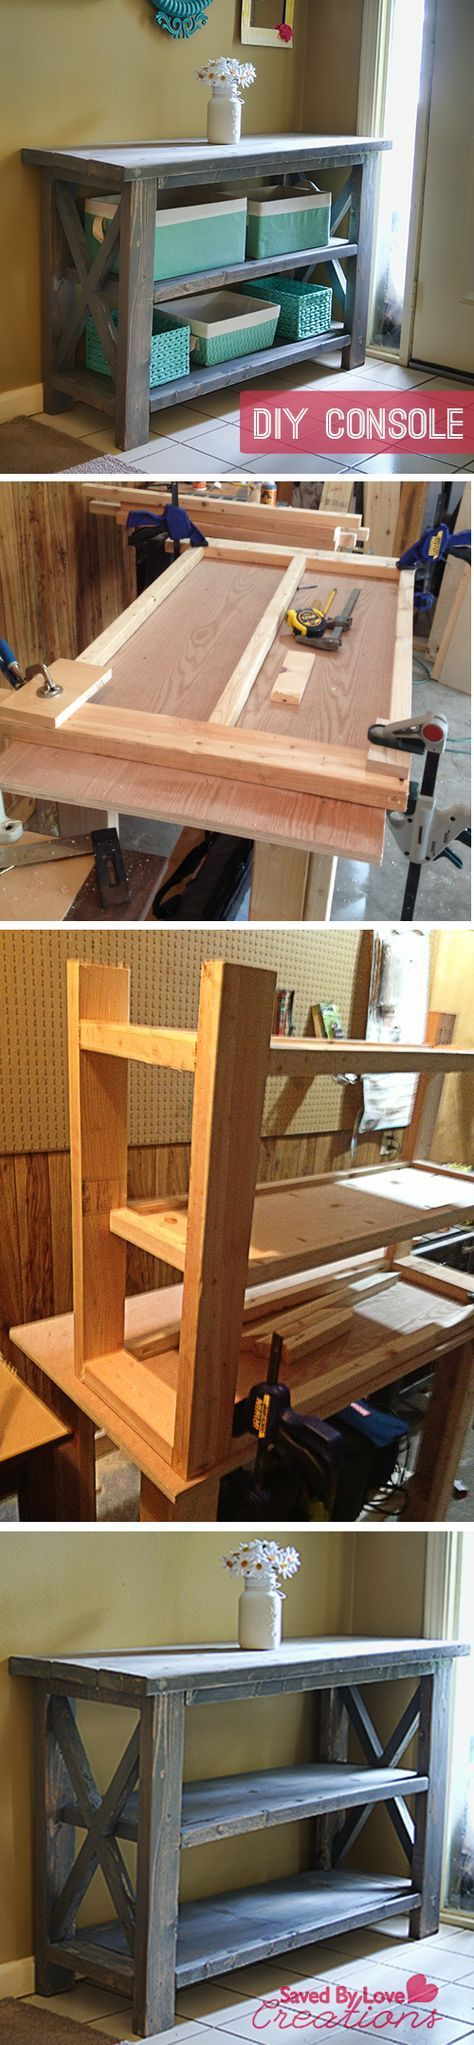 rustic console table woodworking diy plan from ana white built by